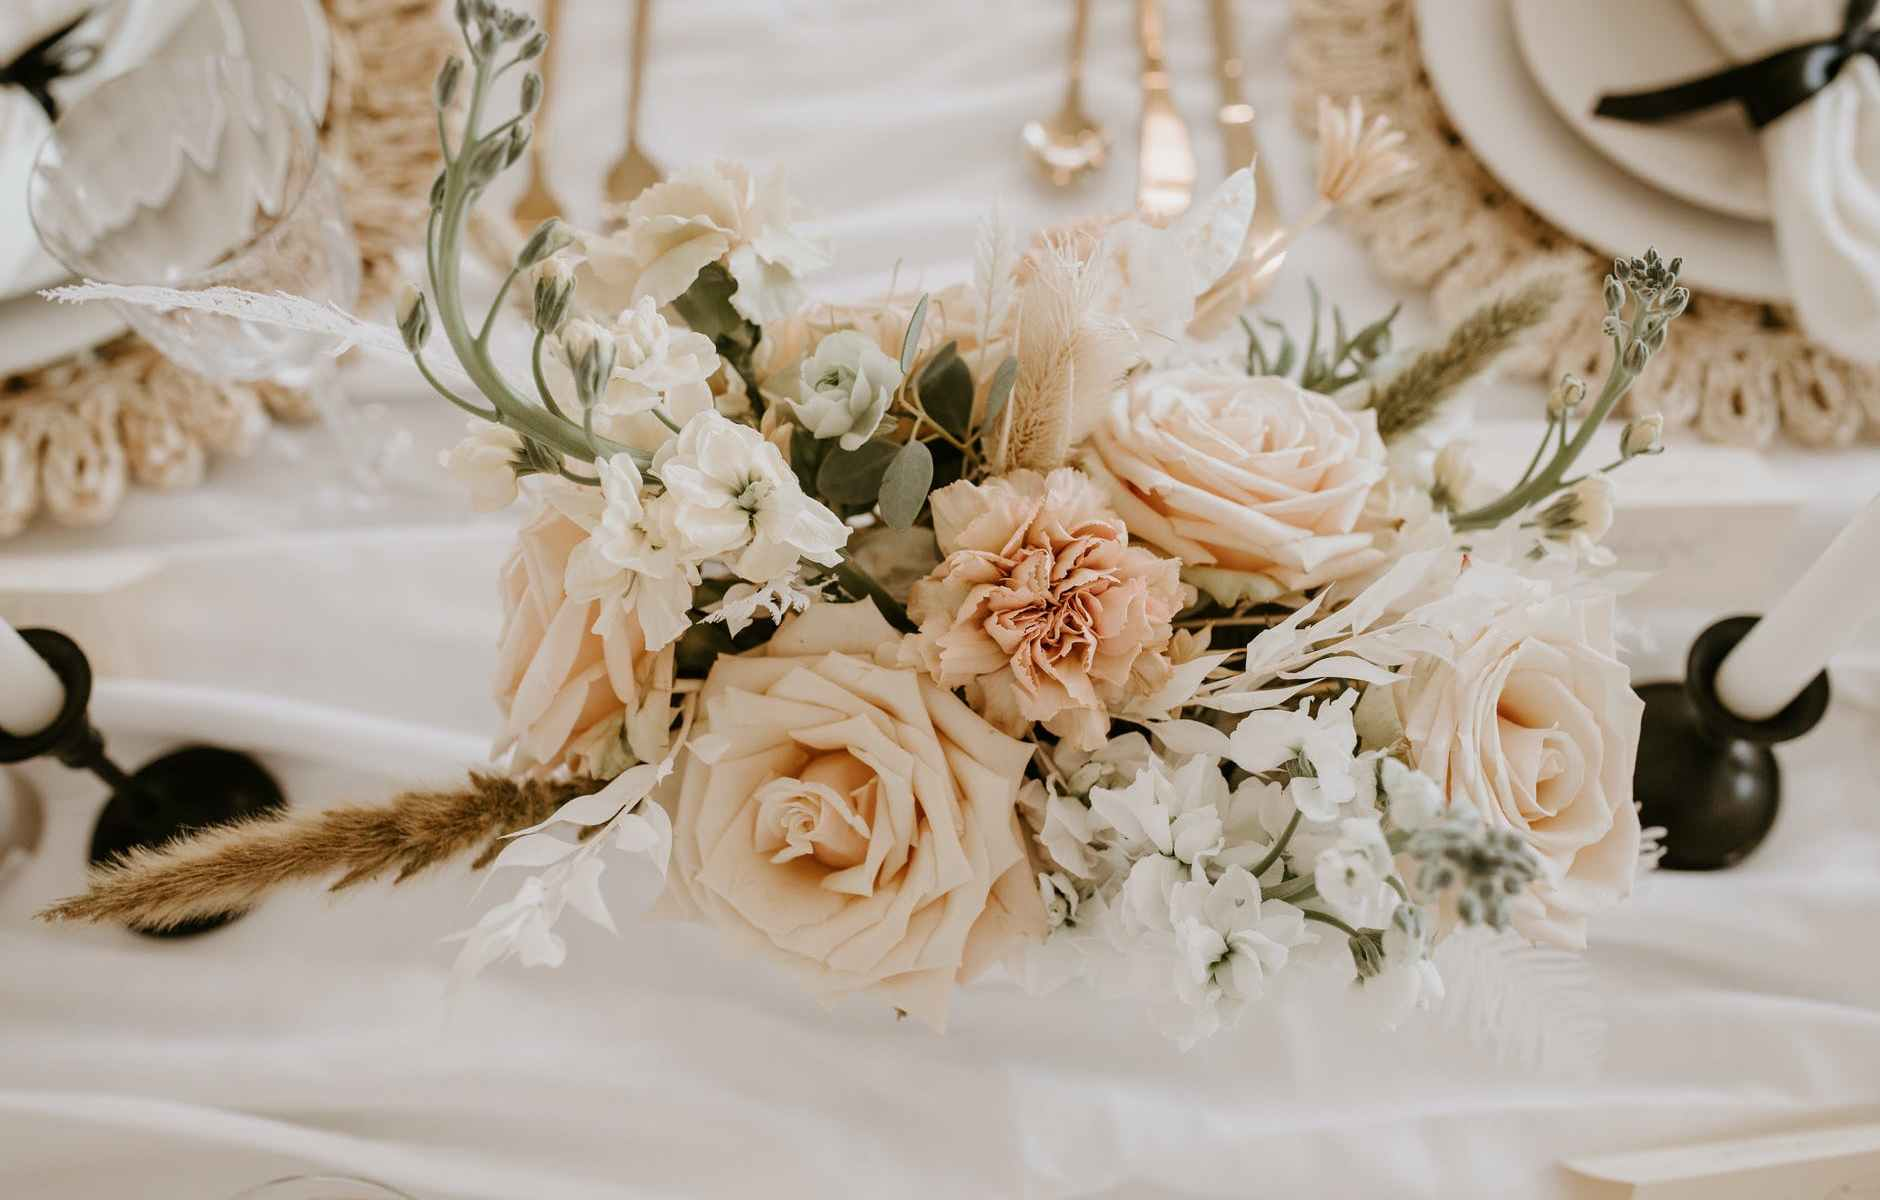 elegant flowers placed on table near candles